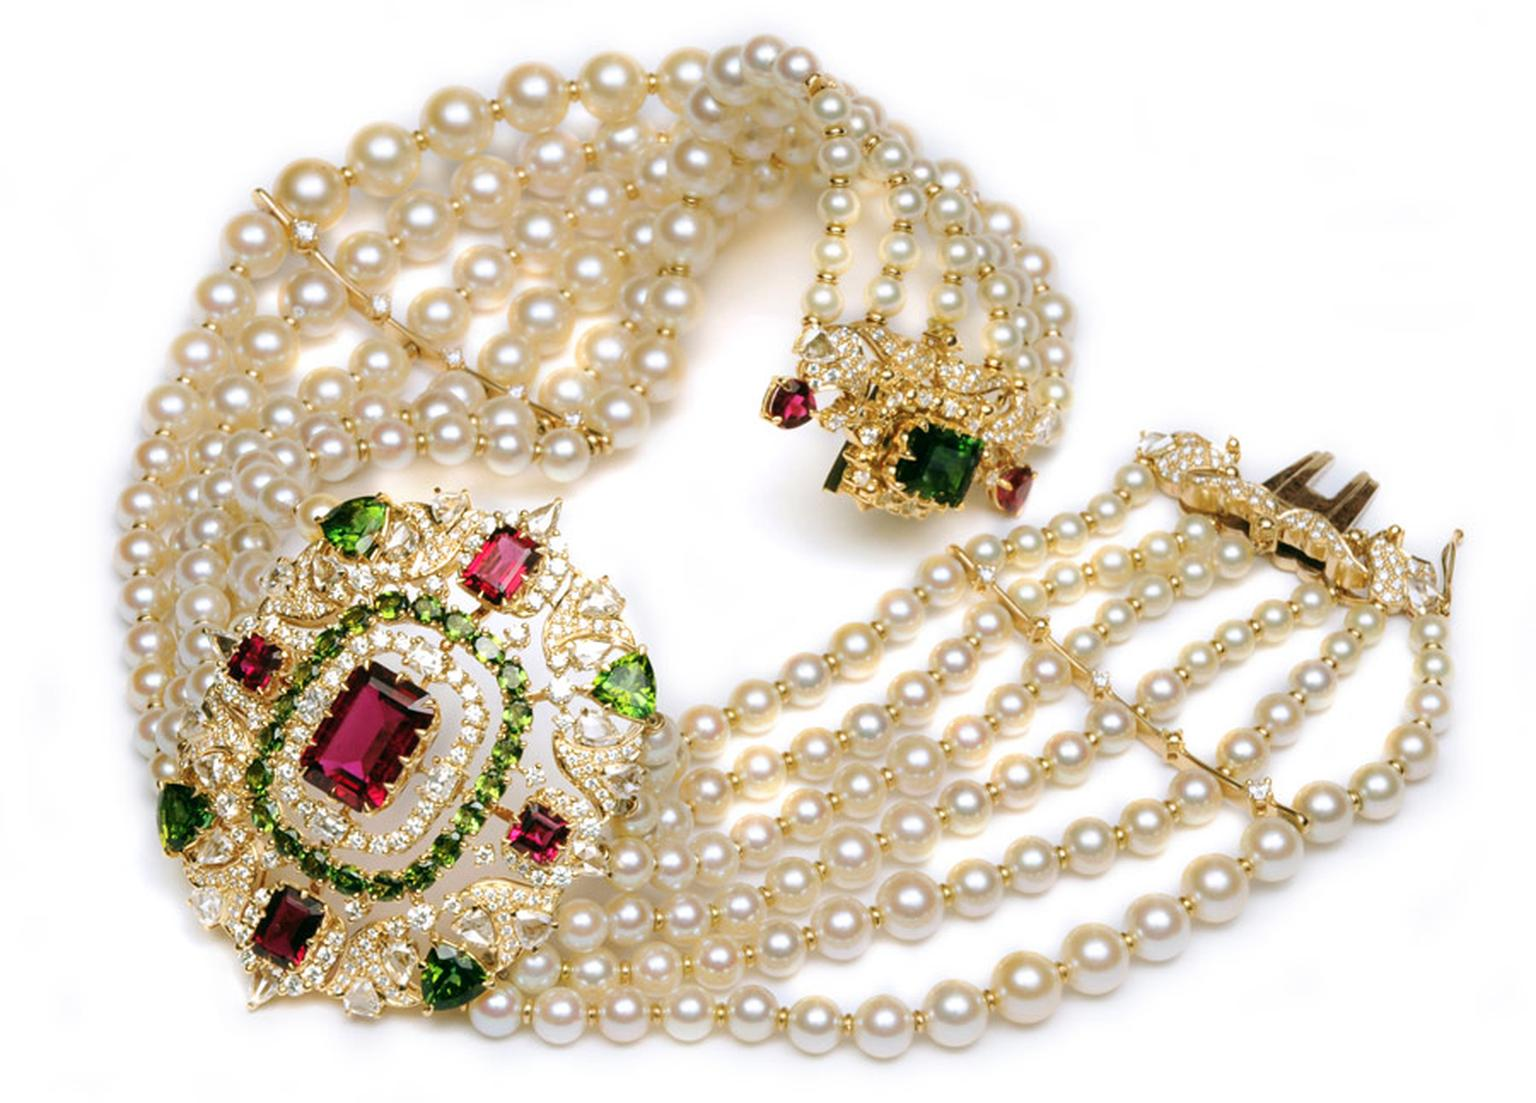 03-Choker---Nizam-collection-Ganjam''.jpg